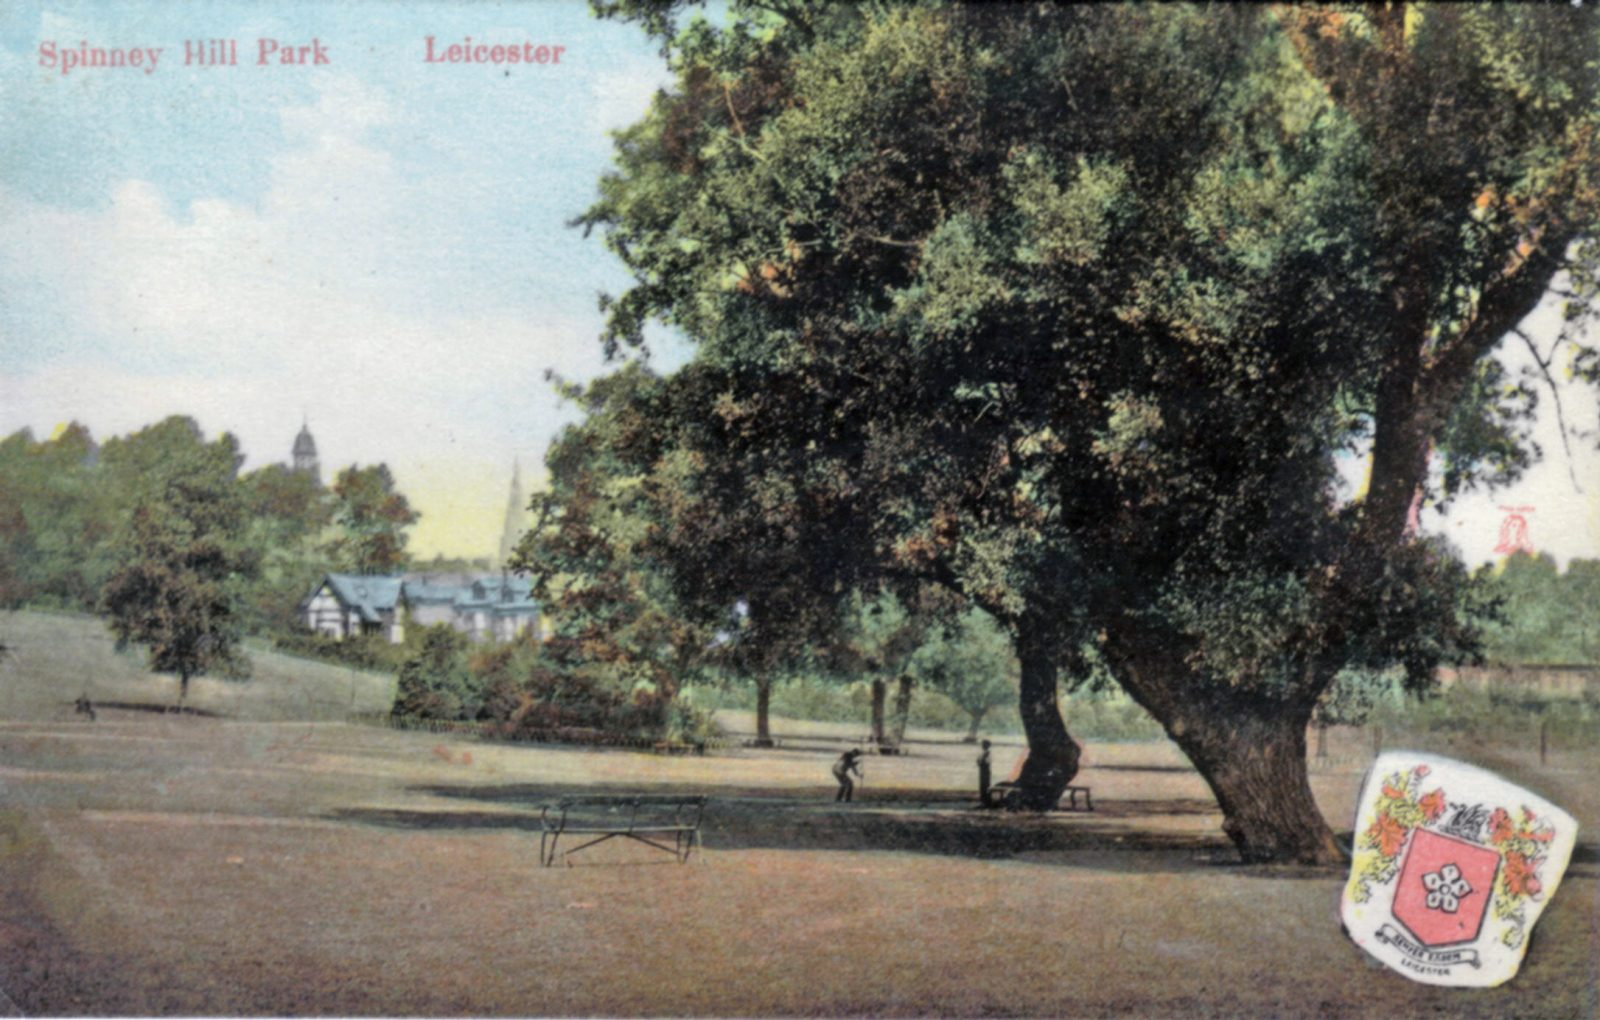 Spinney Hill Park, Leicester. Undated: Open area of park with children playing. (File:1246)